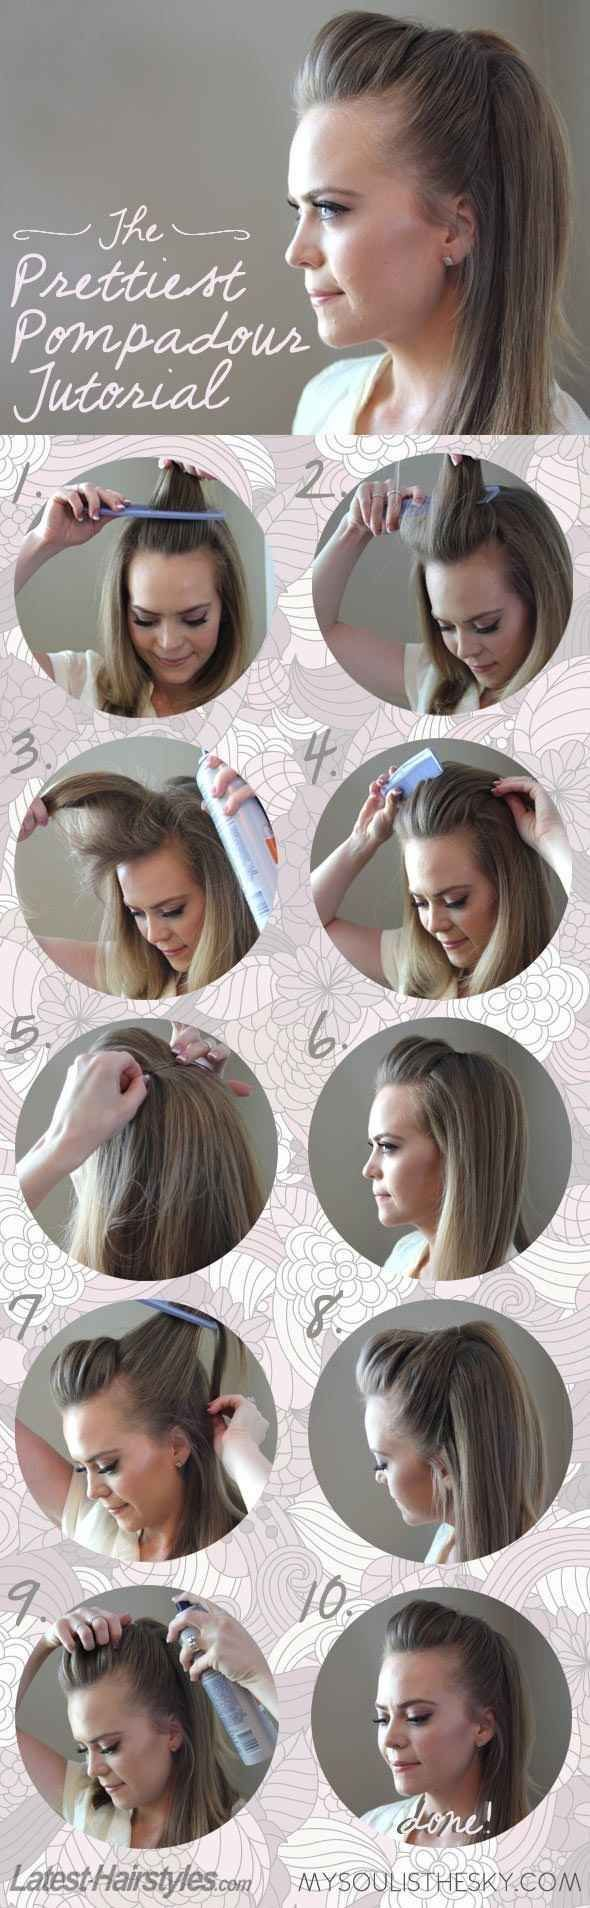 best frisuren images on pinterest cute hairstyles hairstyle